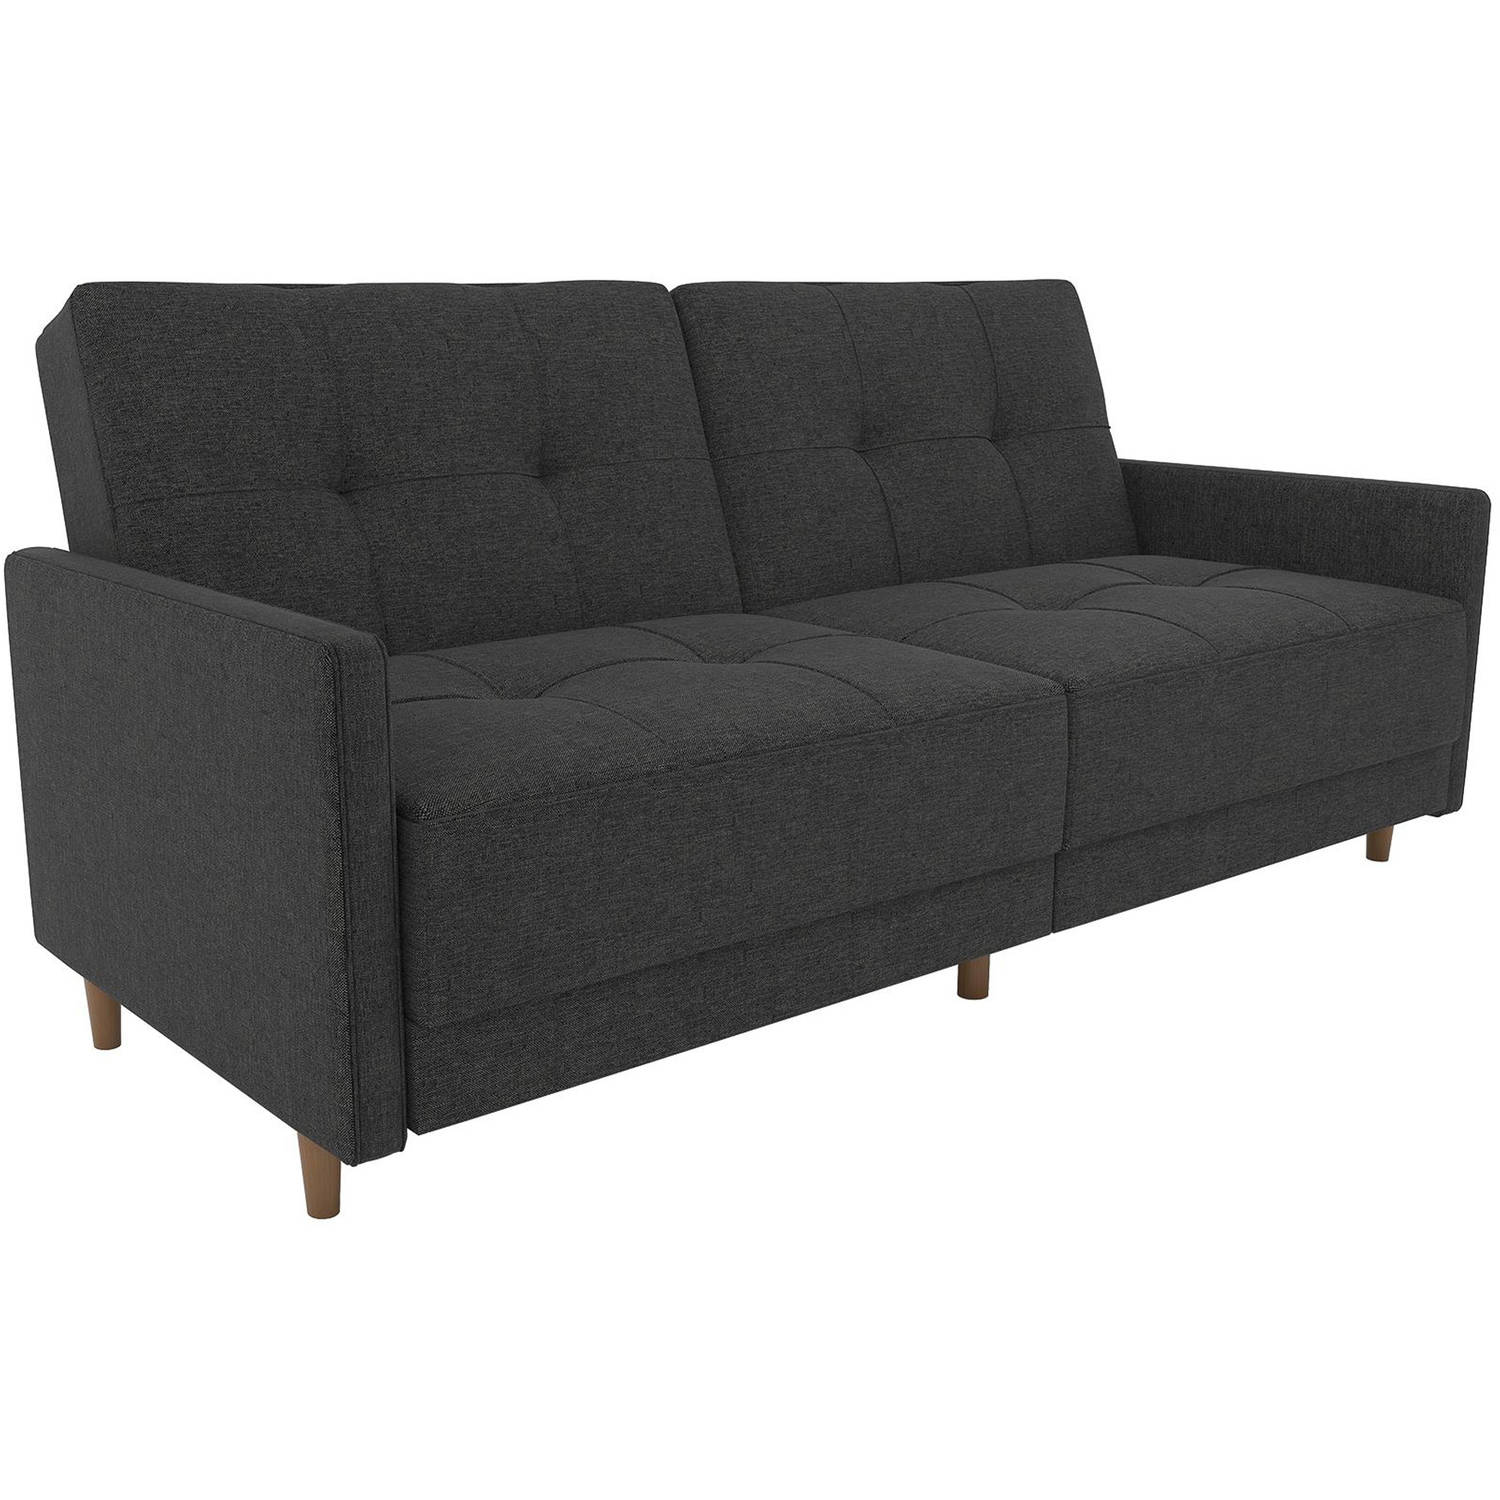 Product Image DHP Andora Coil Convertible Futon Couch, Multiple Colors